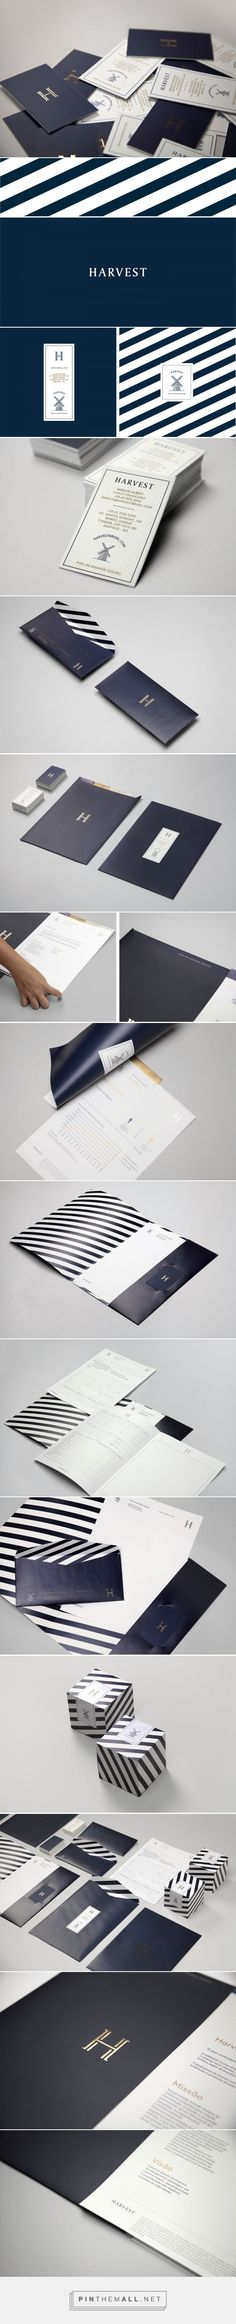 Beautiful branding